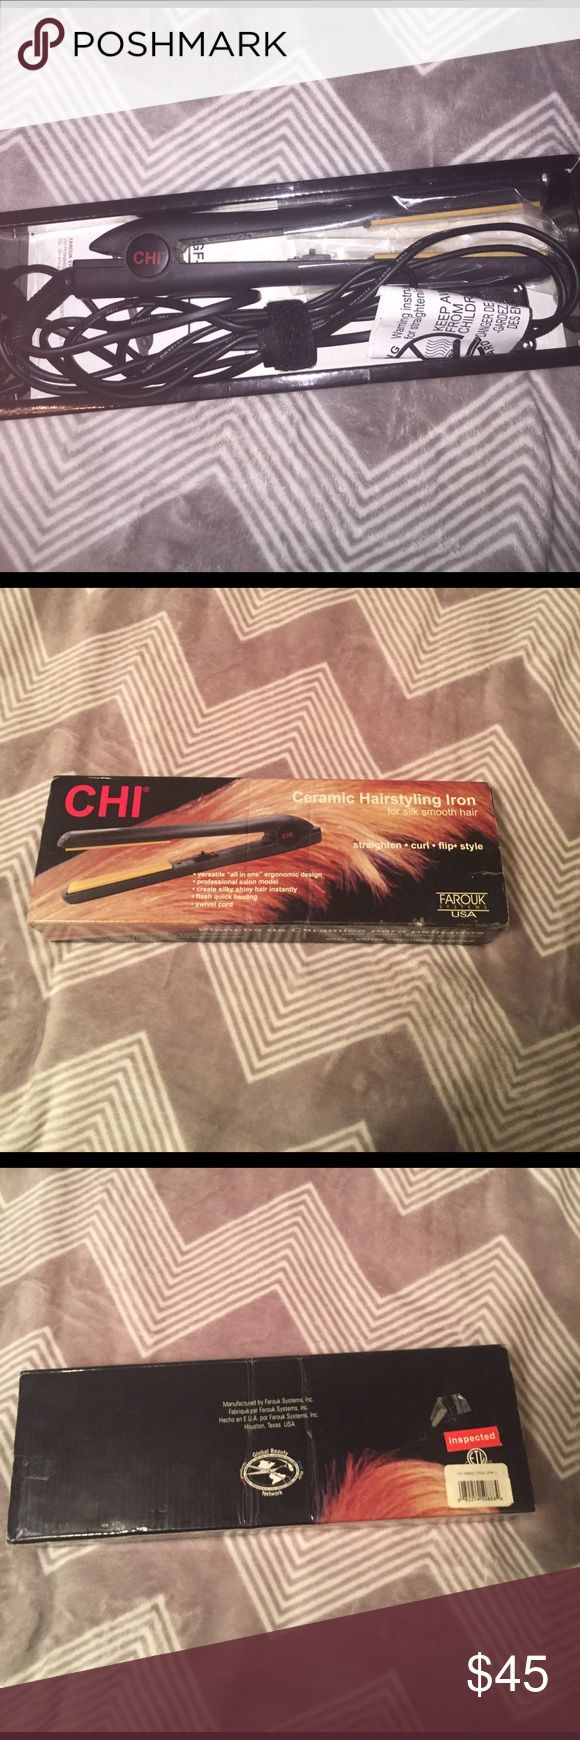 Chi Hair Straightener Chi Hair straightener, got it as a gift a while ago but too lazy to use, too much curly hair :( only used like 5-7 times the most. It is in good condition. (Model GF1001) chi Makeup Brushes & Tools